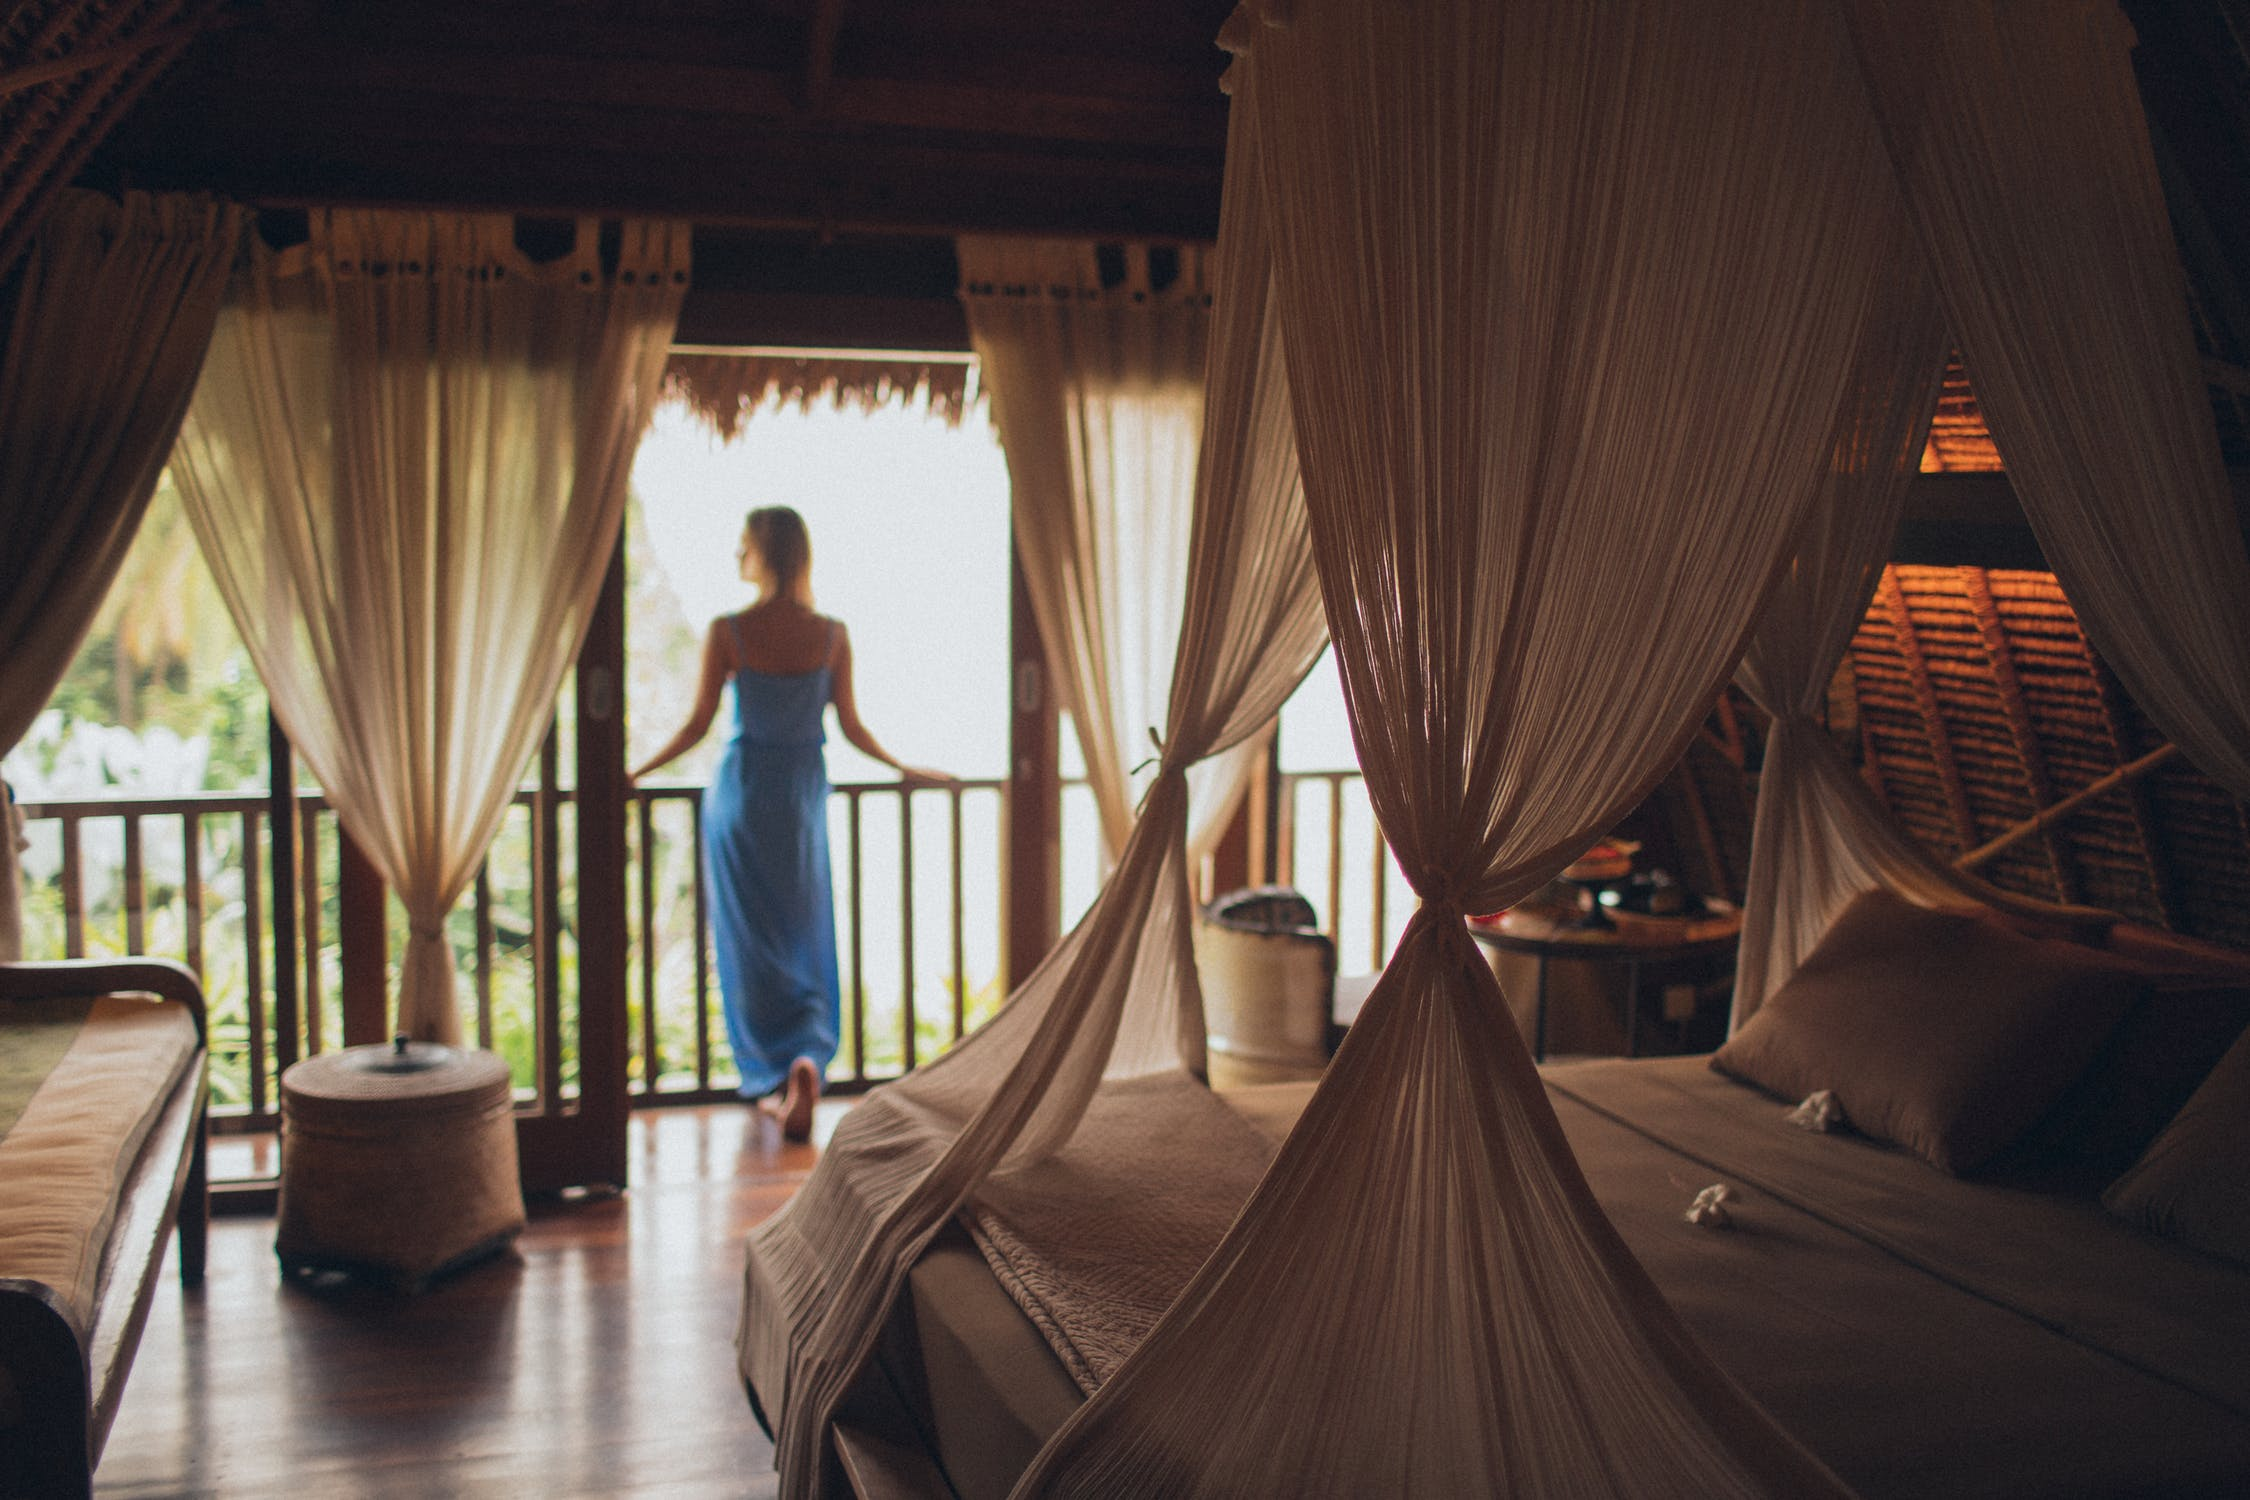 Book the Perfect Hotel at the Last Minute with the Best Hotel Apps